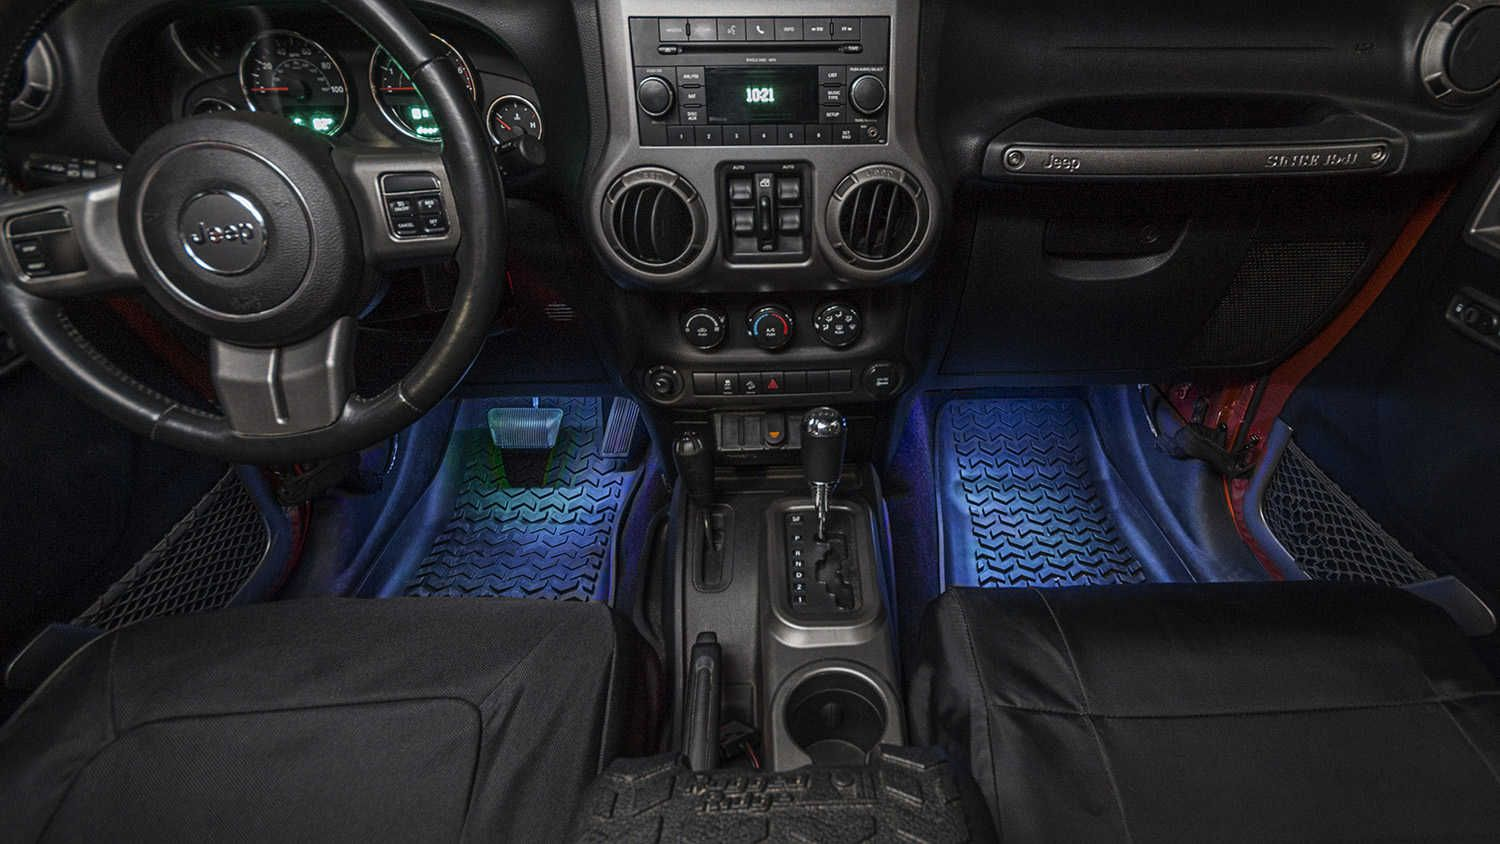 Rugged Ridge Interior Courtesy Lighting Kit For 07 20 Jeep Wrangler Jl Jk Gladiator Jt Jeep Interiors Jeep Jeep Wrangler